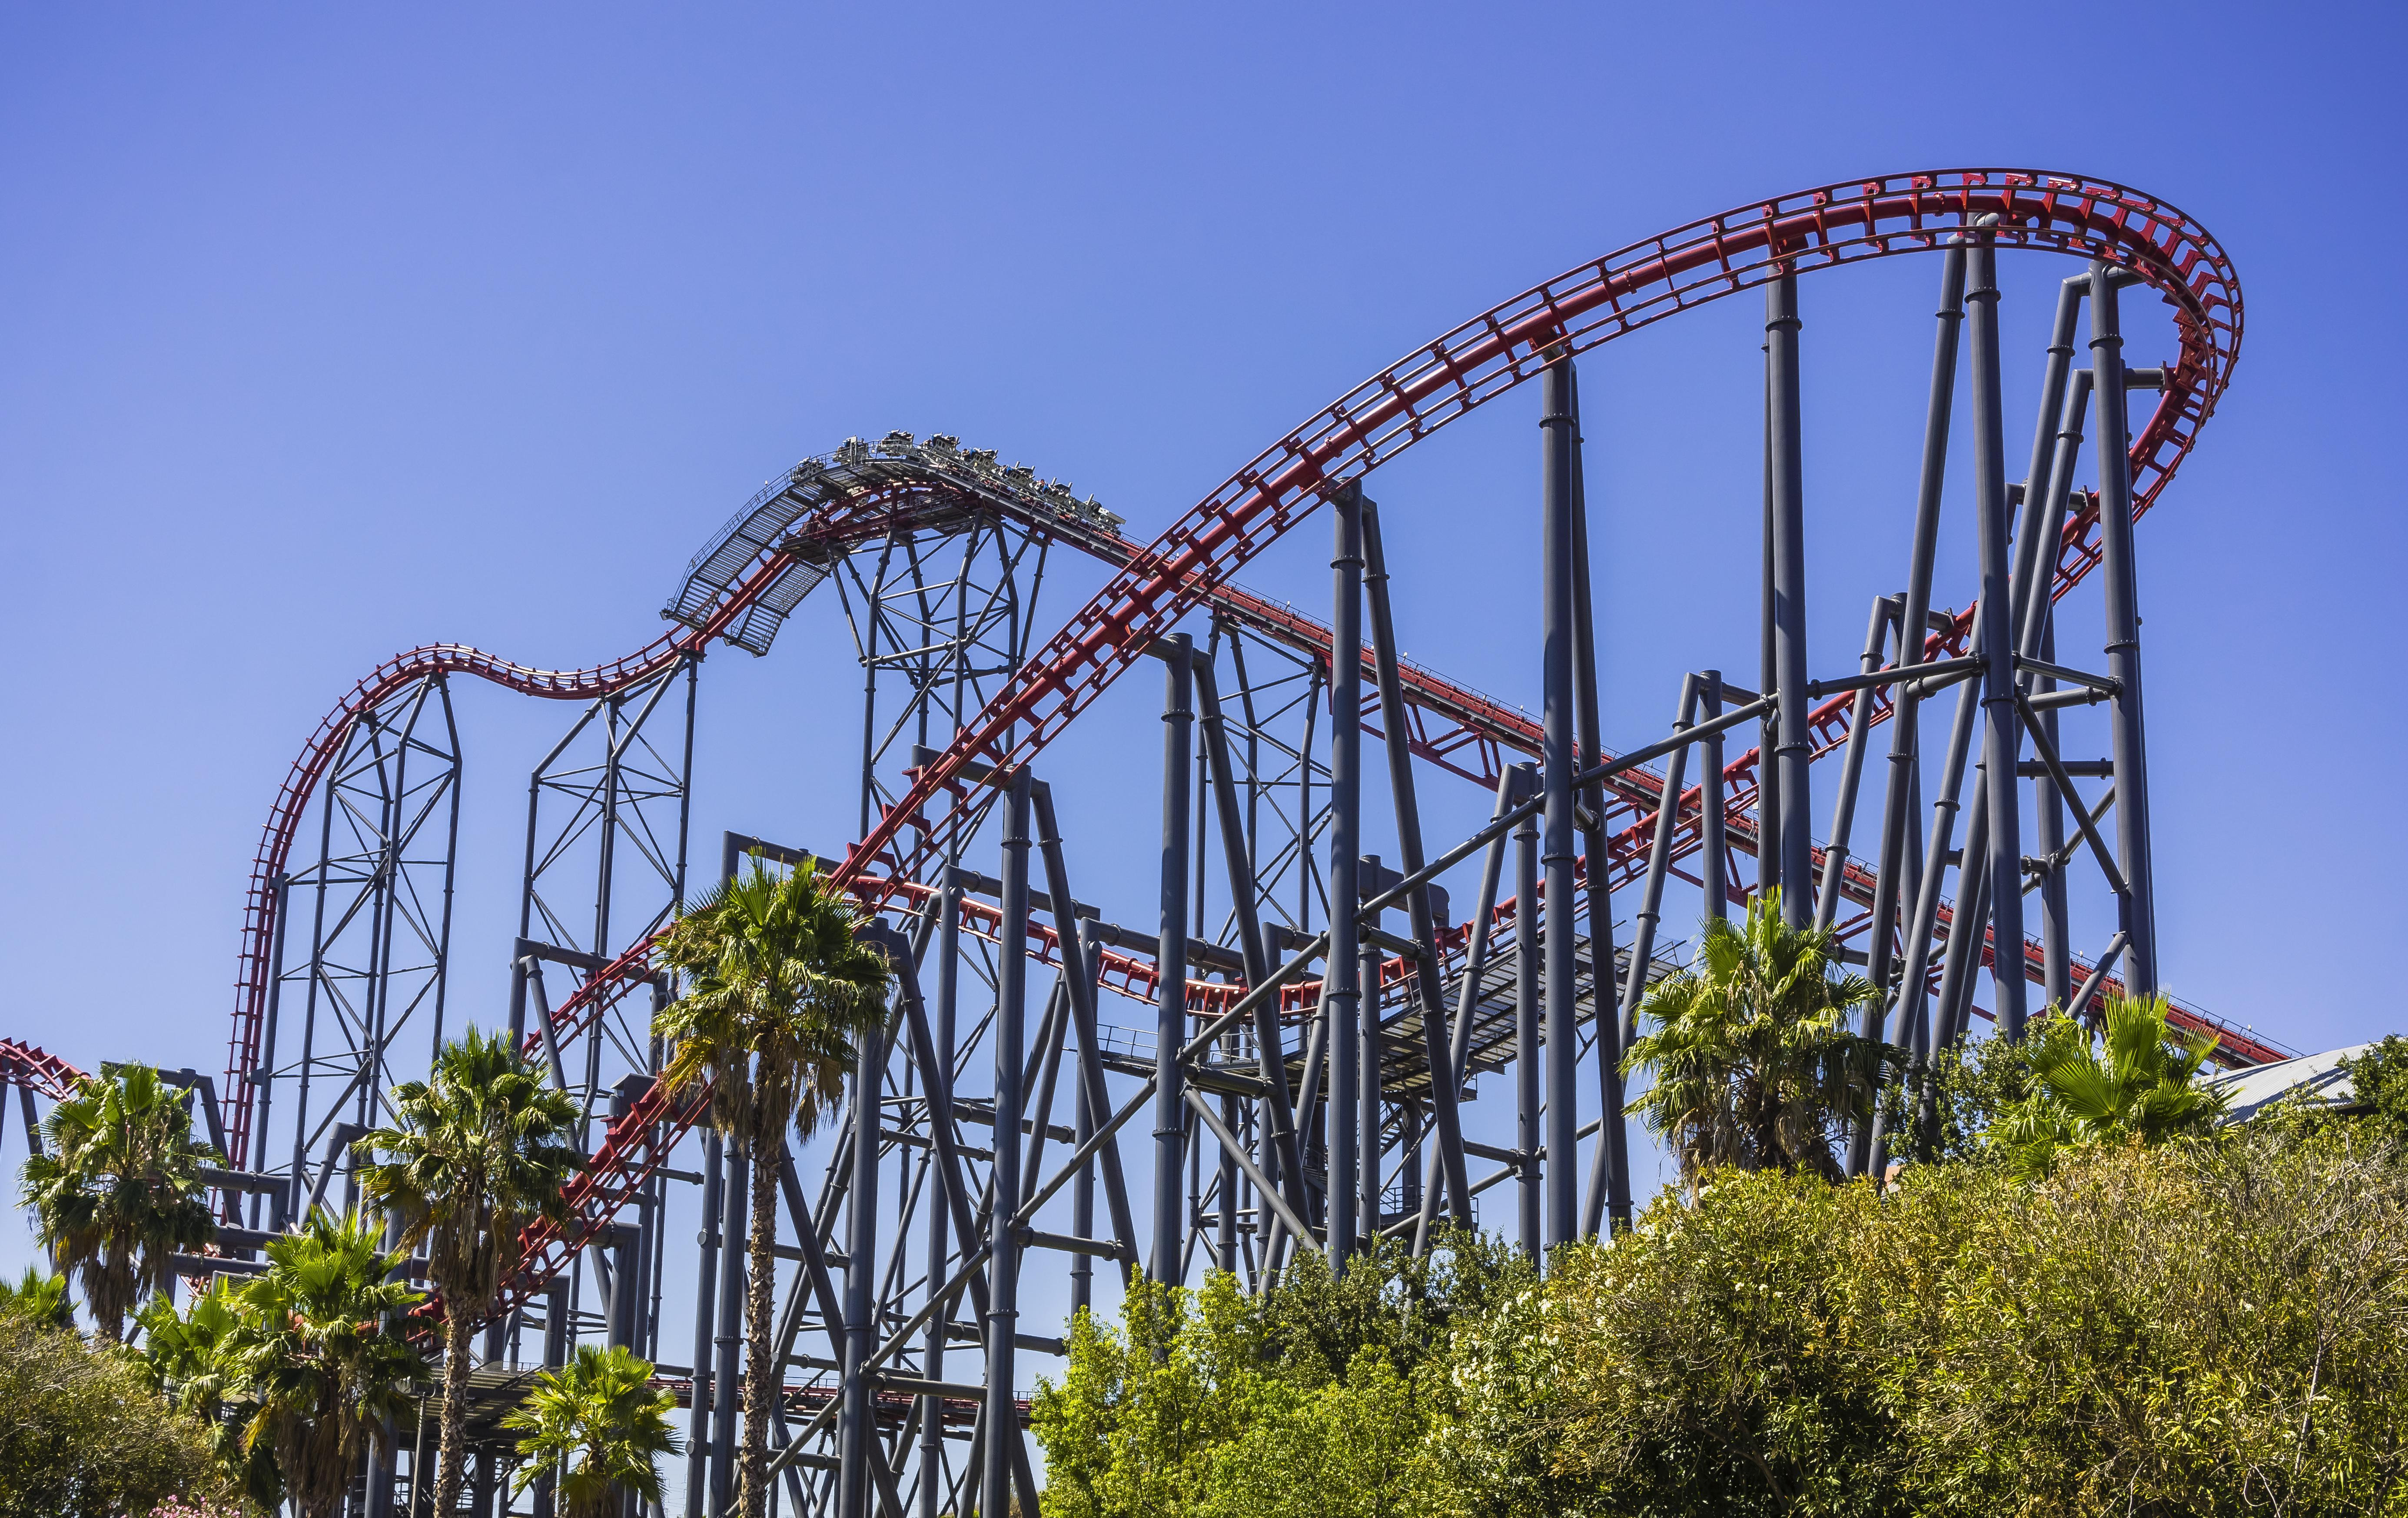 Southern California Theme Park Tours from Anaheim